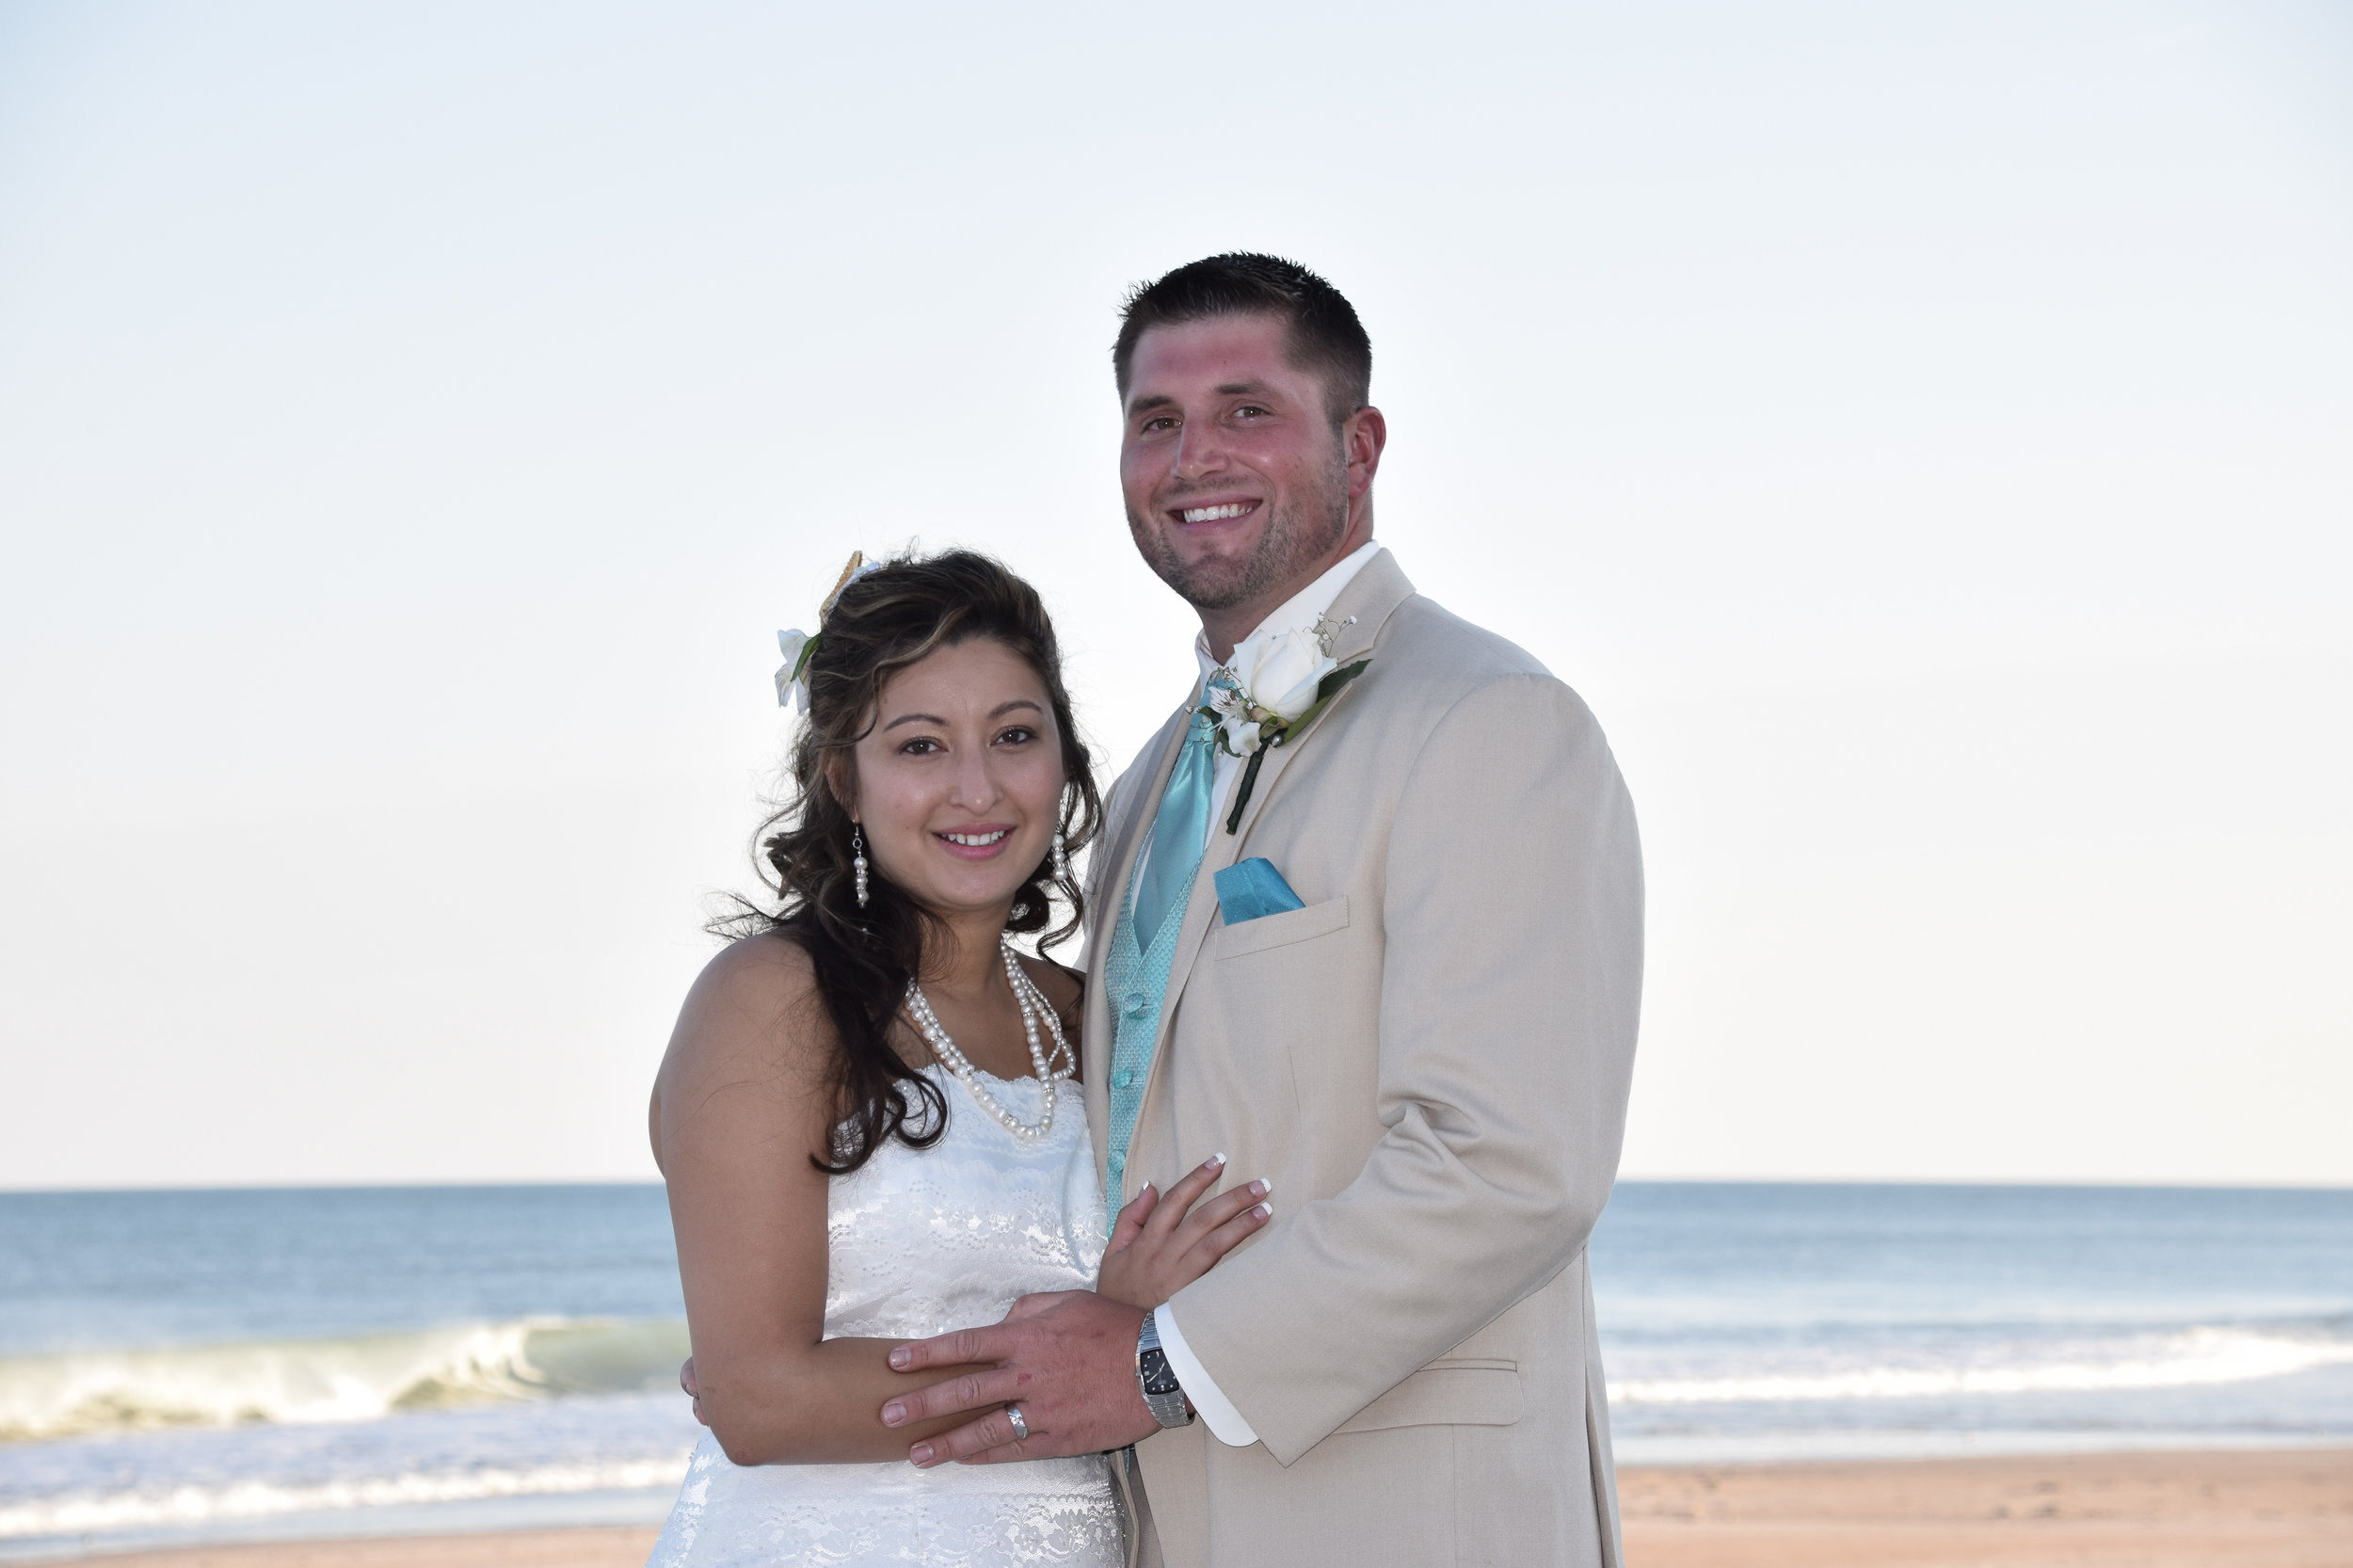 Bride and Groom posing on the beach.